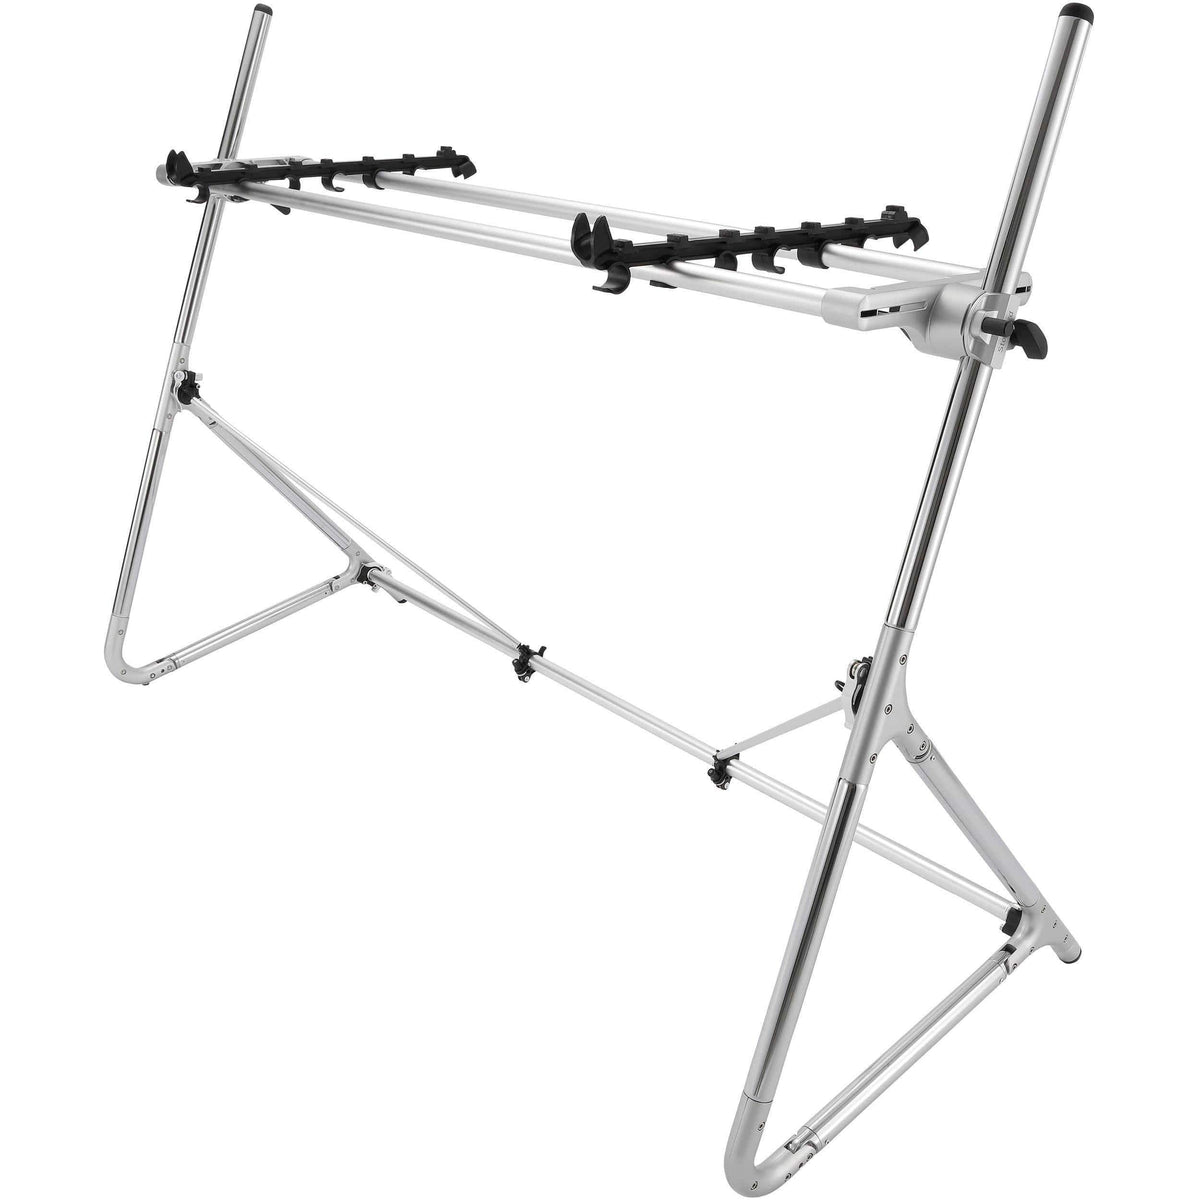 Sequenz Standard-L-SV Large Keyboard Stand - Silver